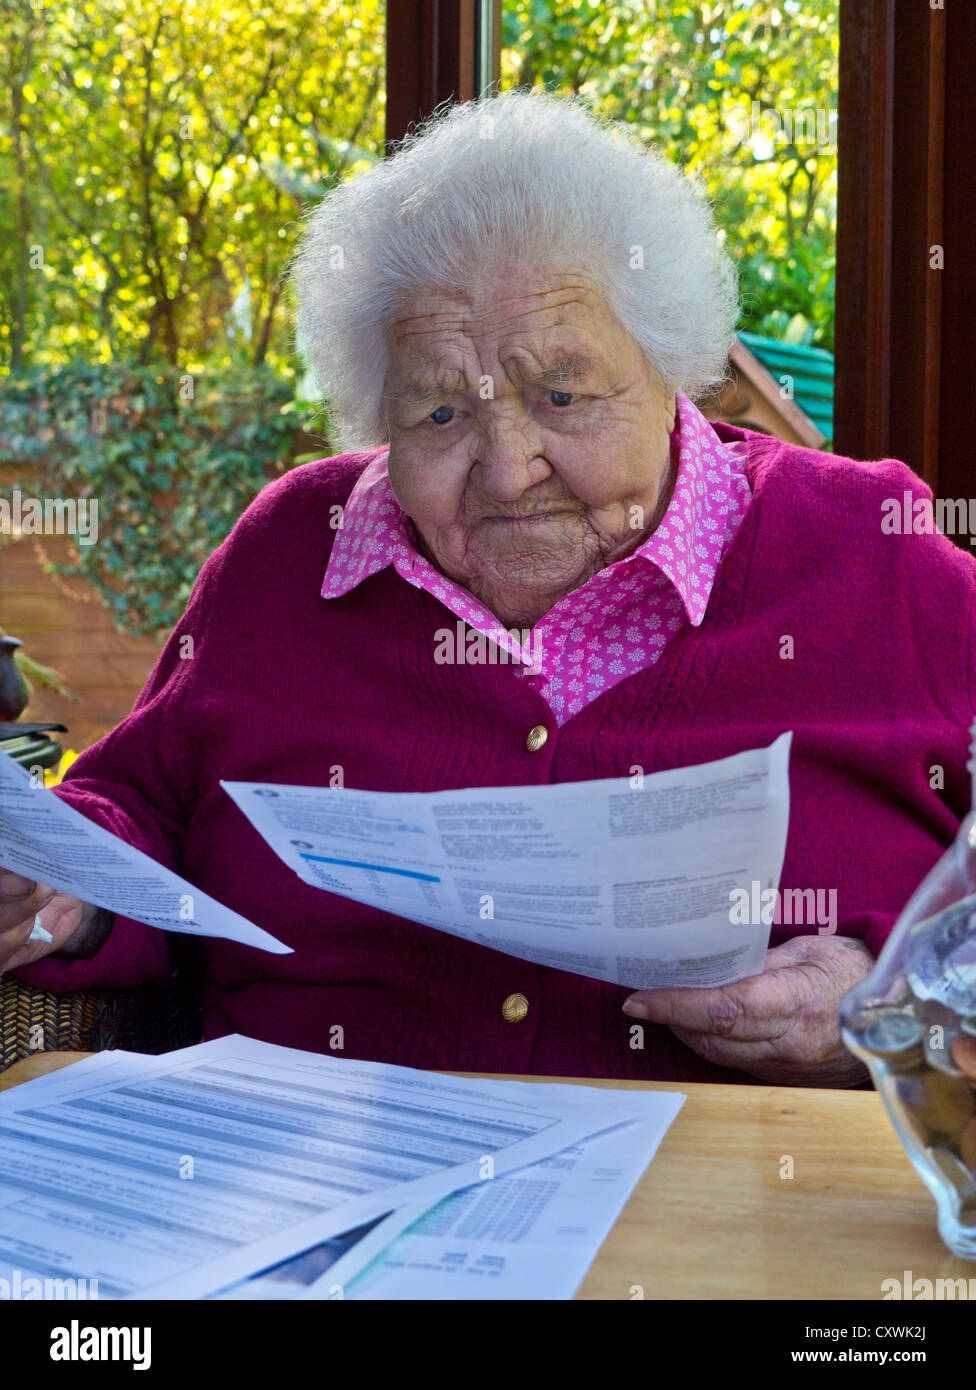 Concerned elderly senior 99 years lady at home reading her latest financial, energy, heating household bills,investments - Stock Image